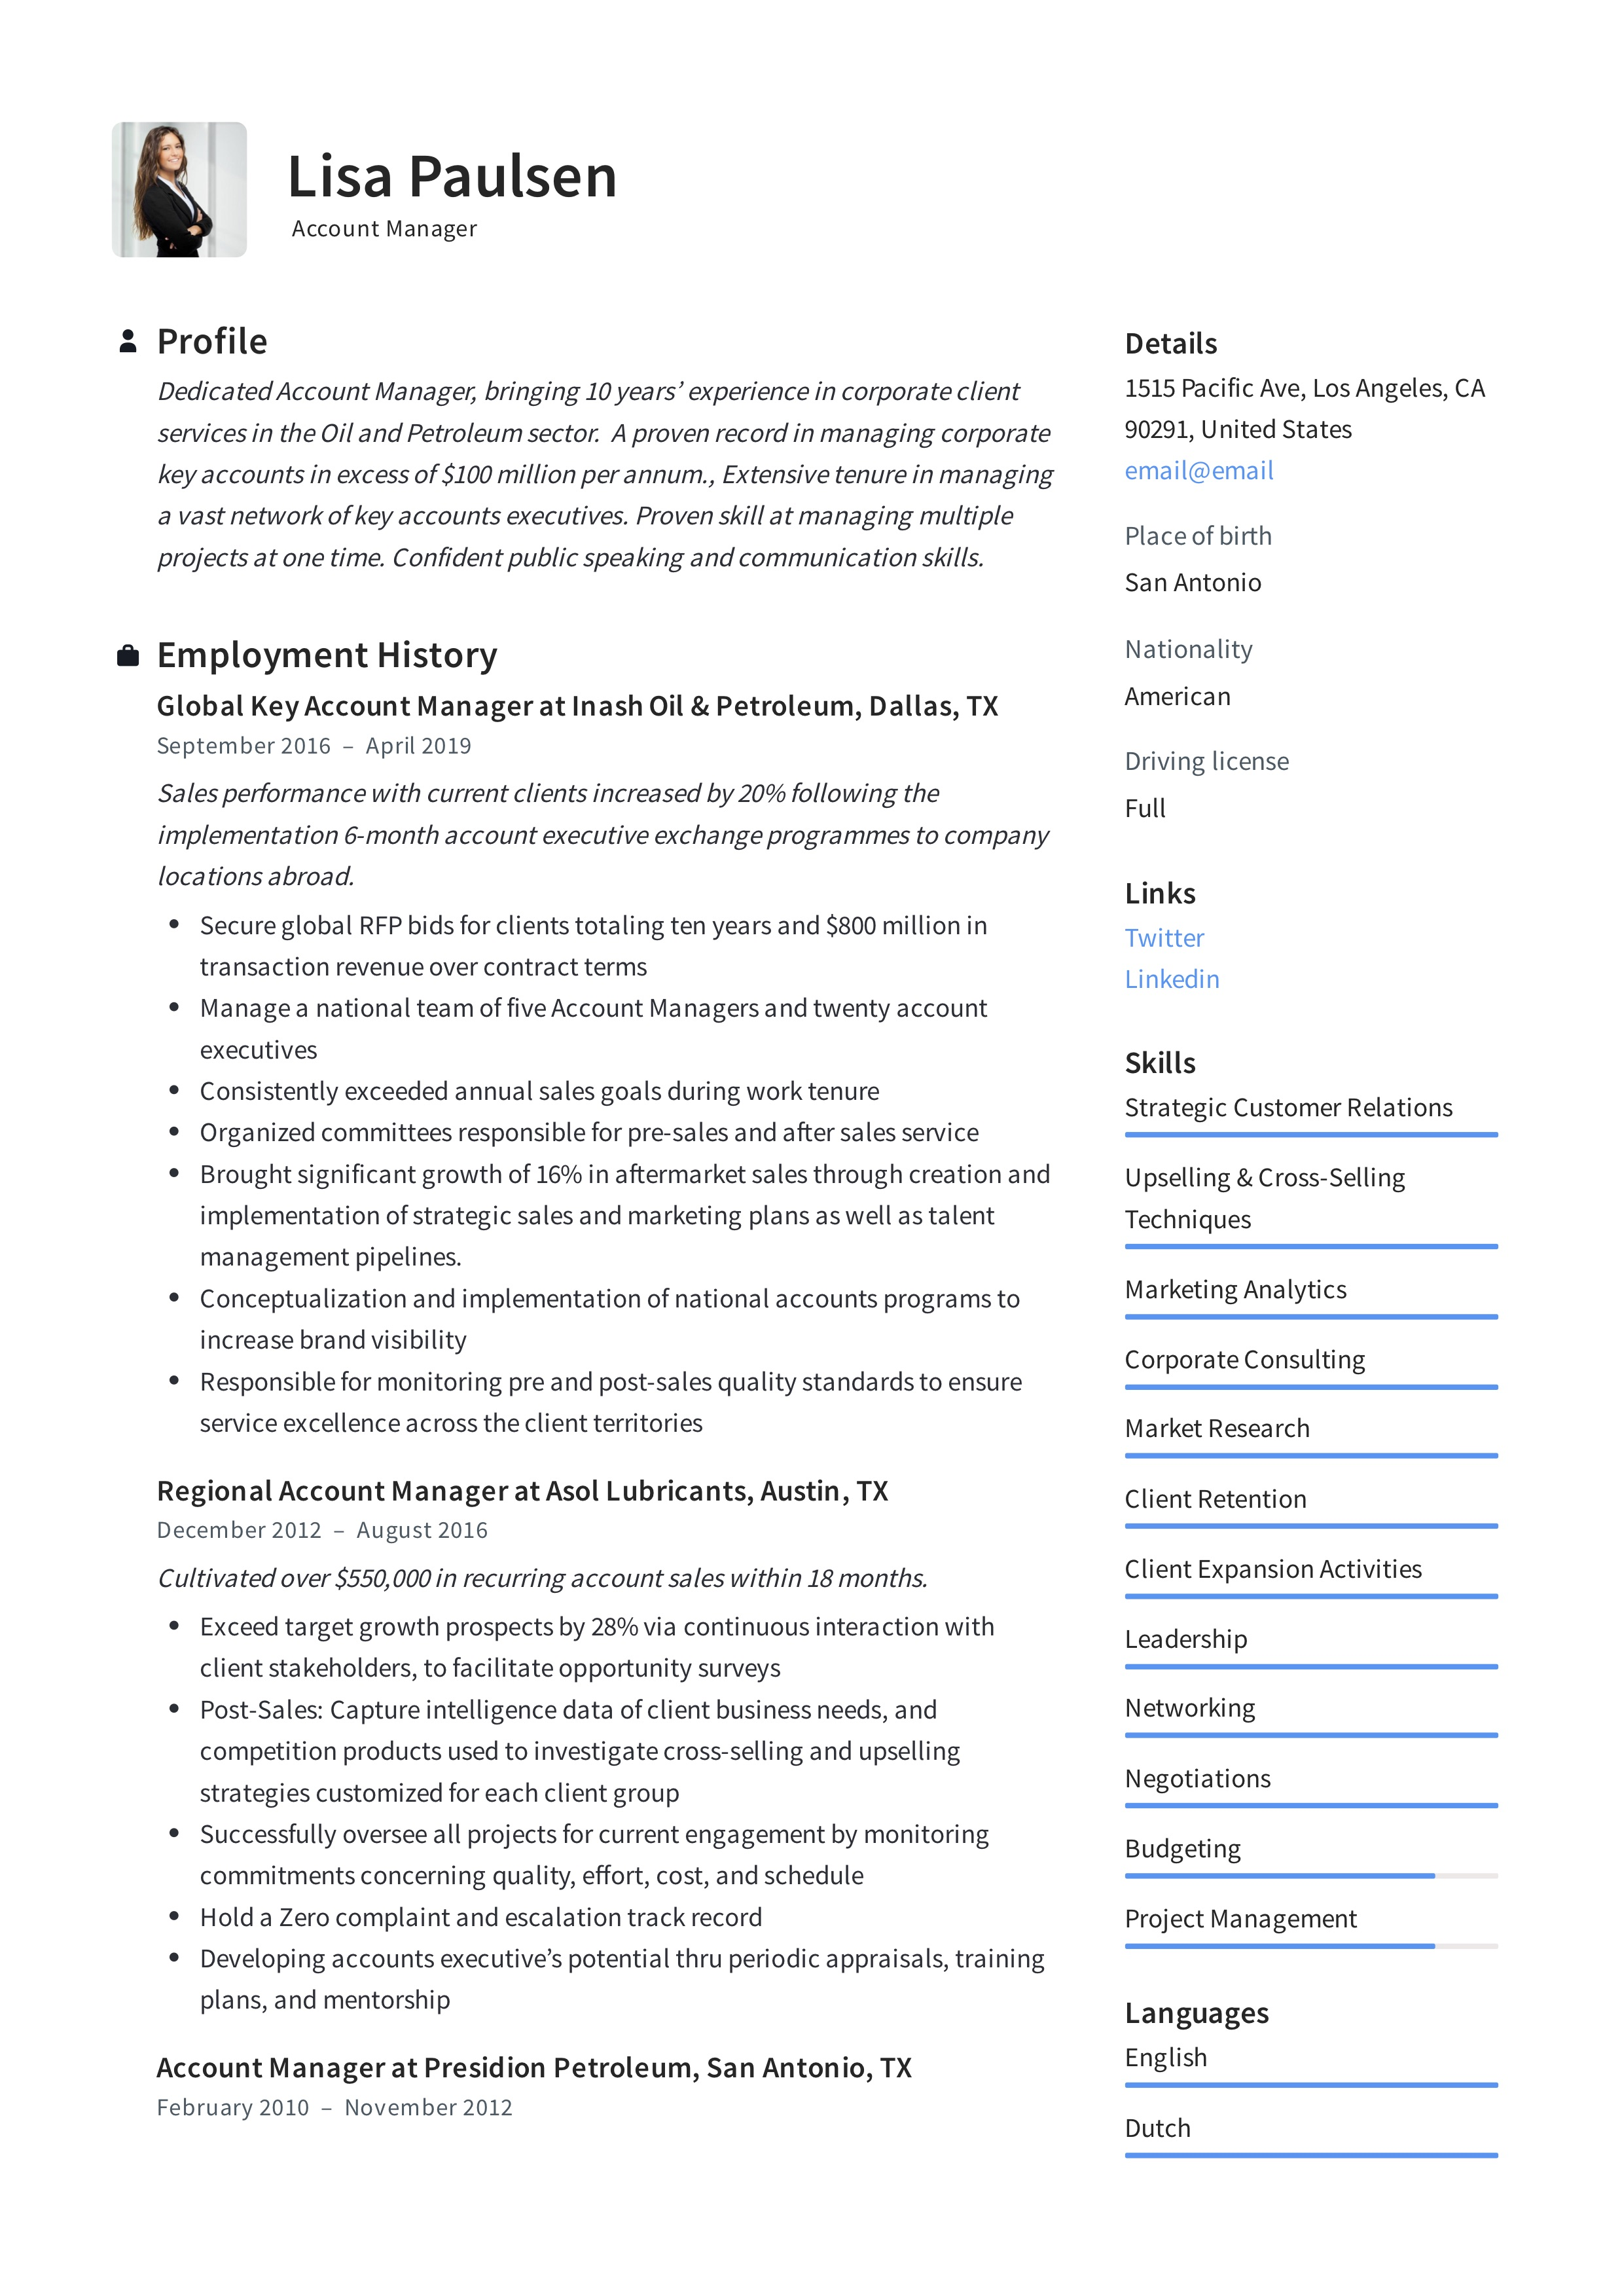 resume profile overview